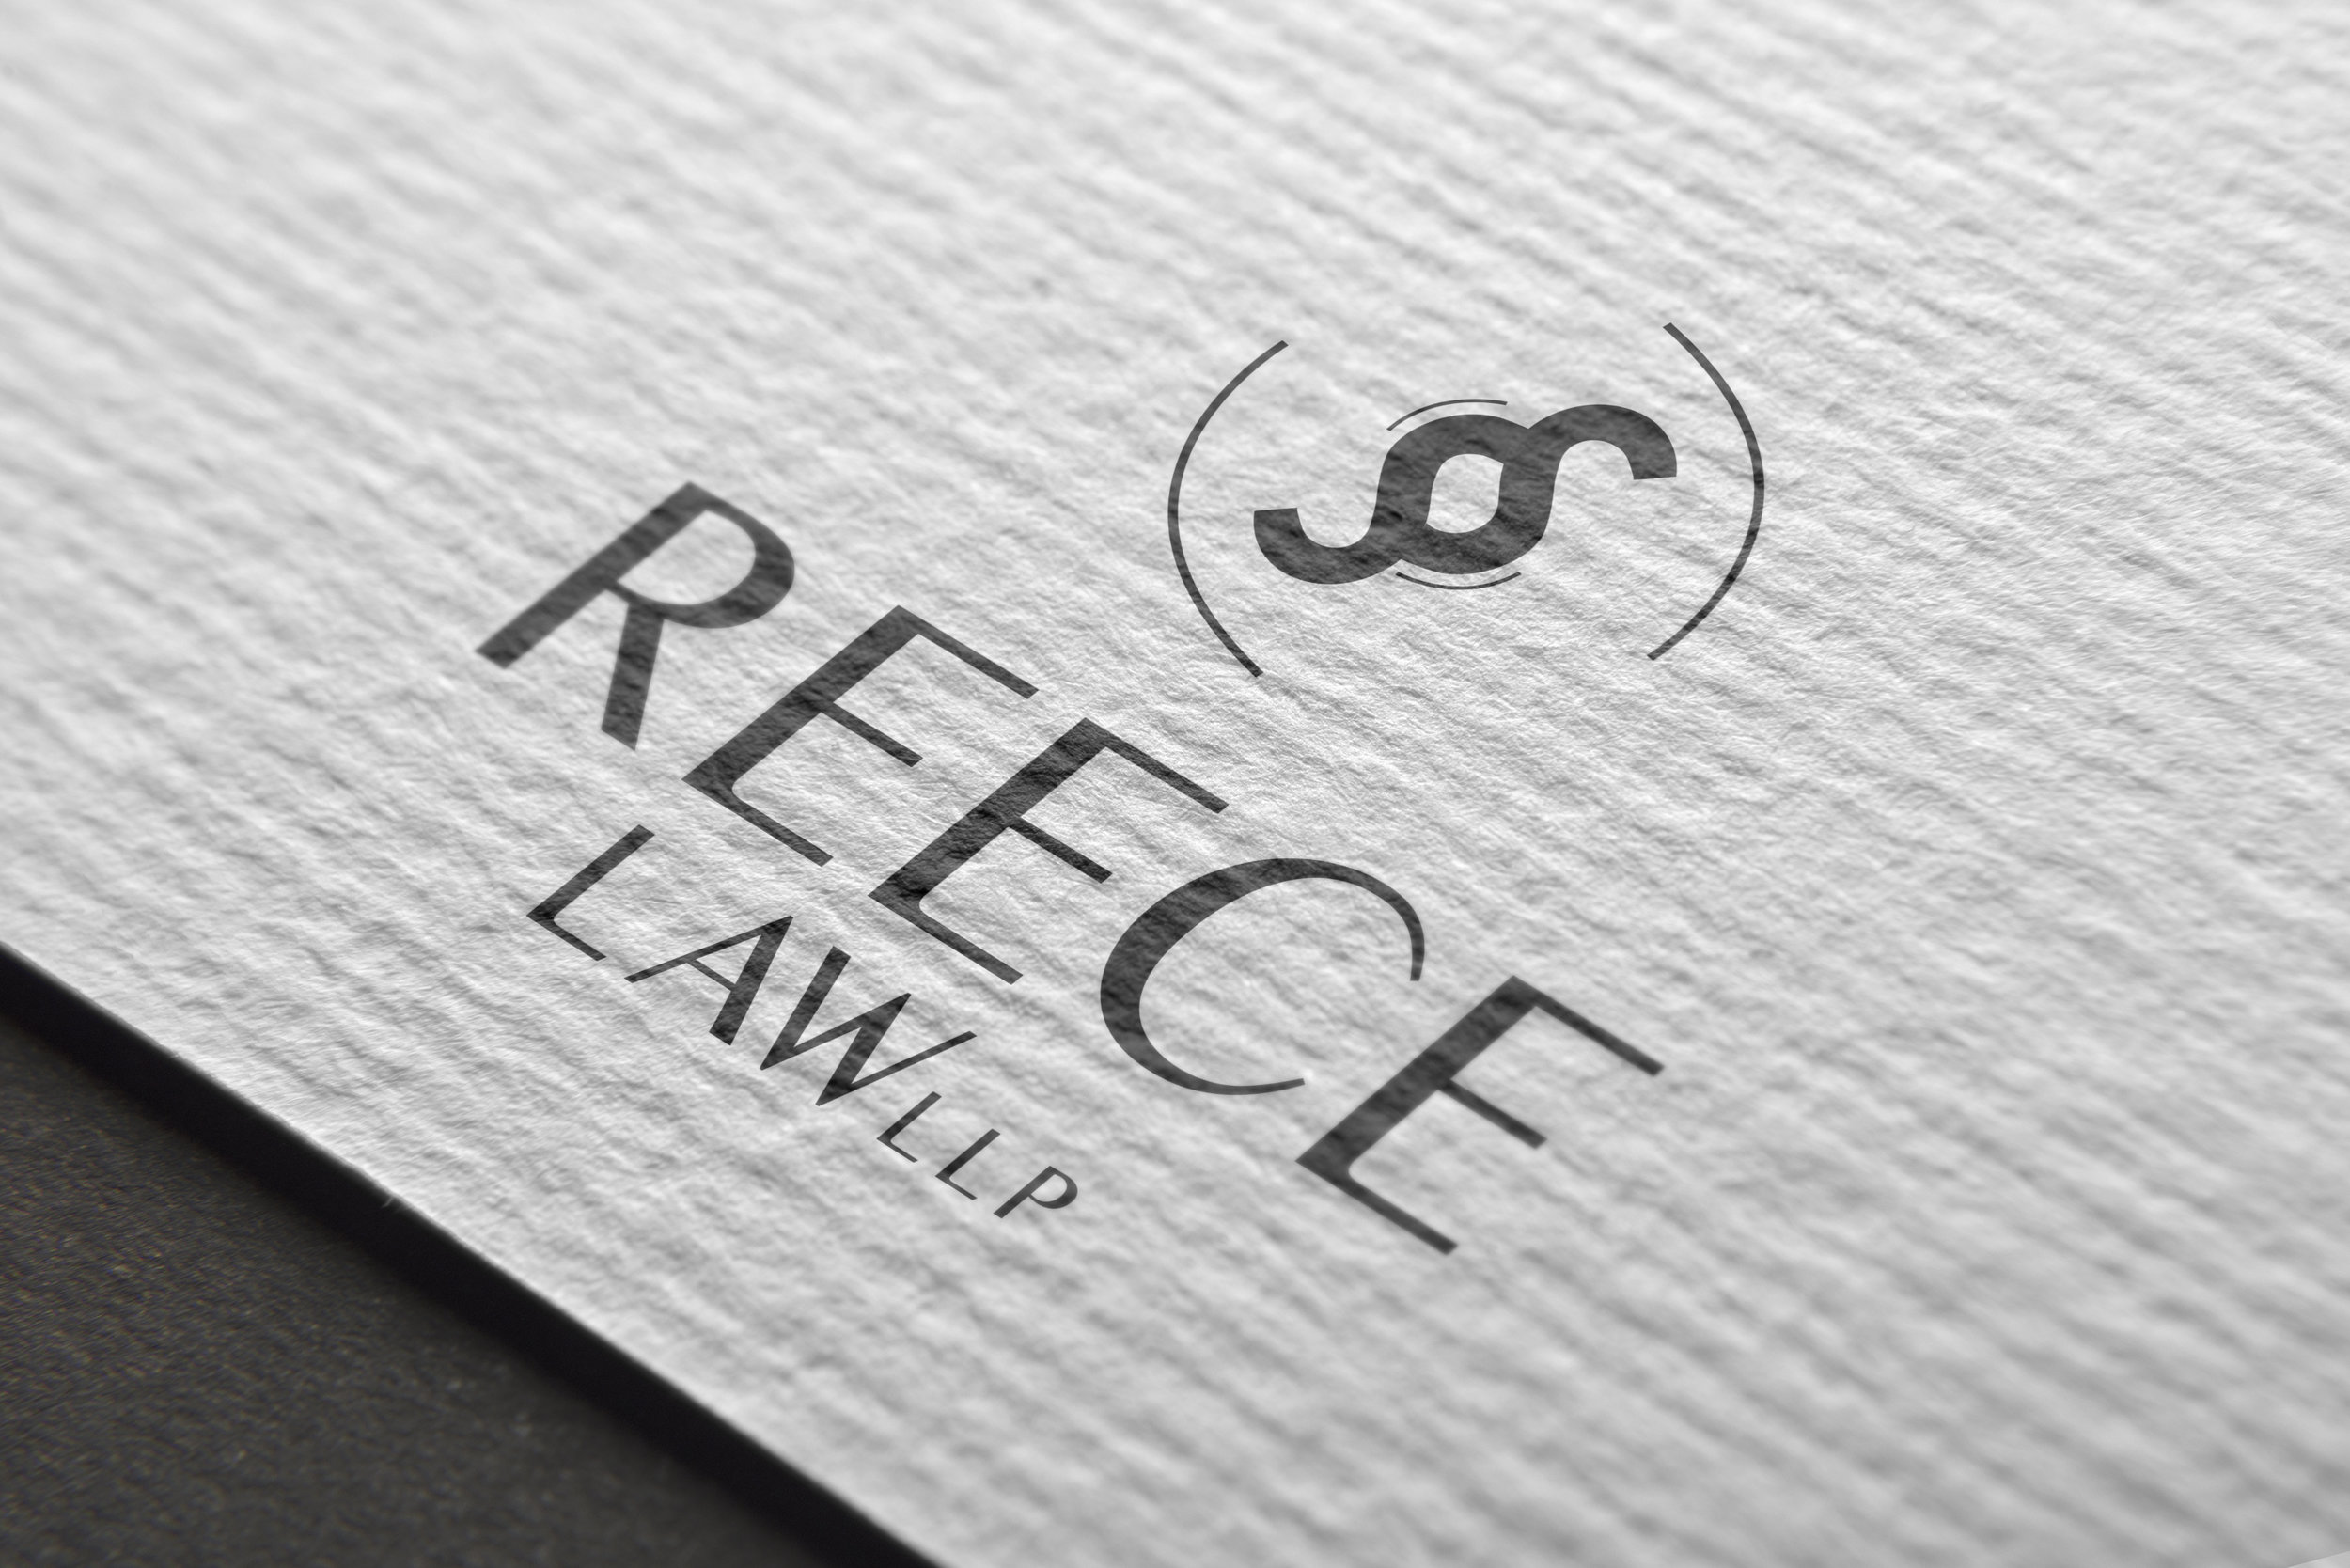 REECE LAW, LLP - Law firm establish an identity honoring its previous legacy.